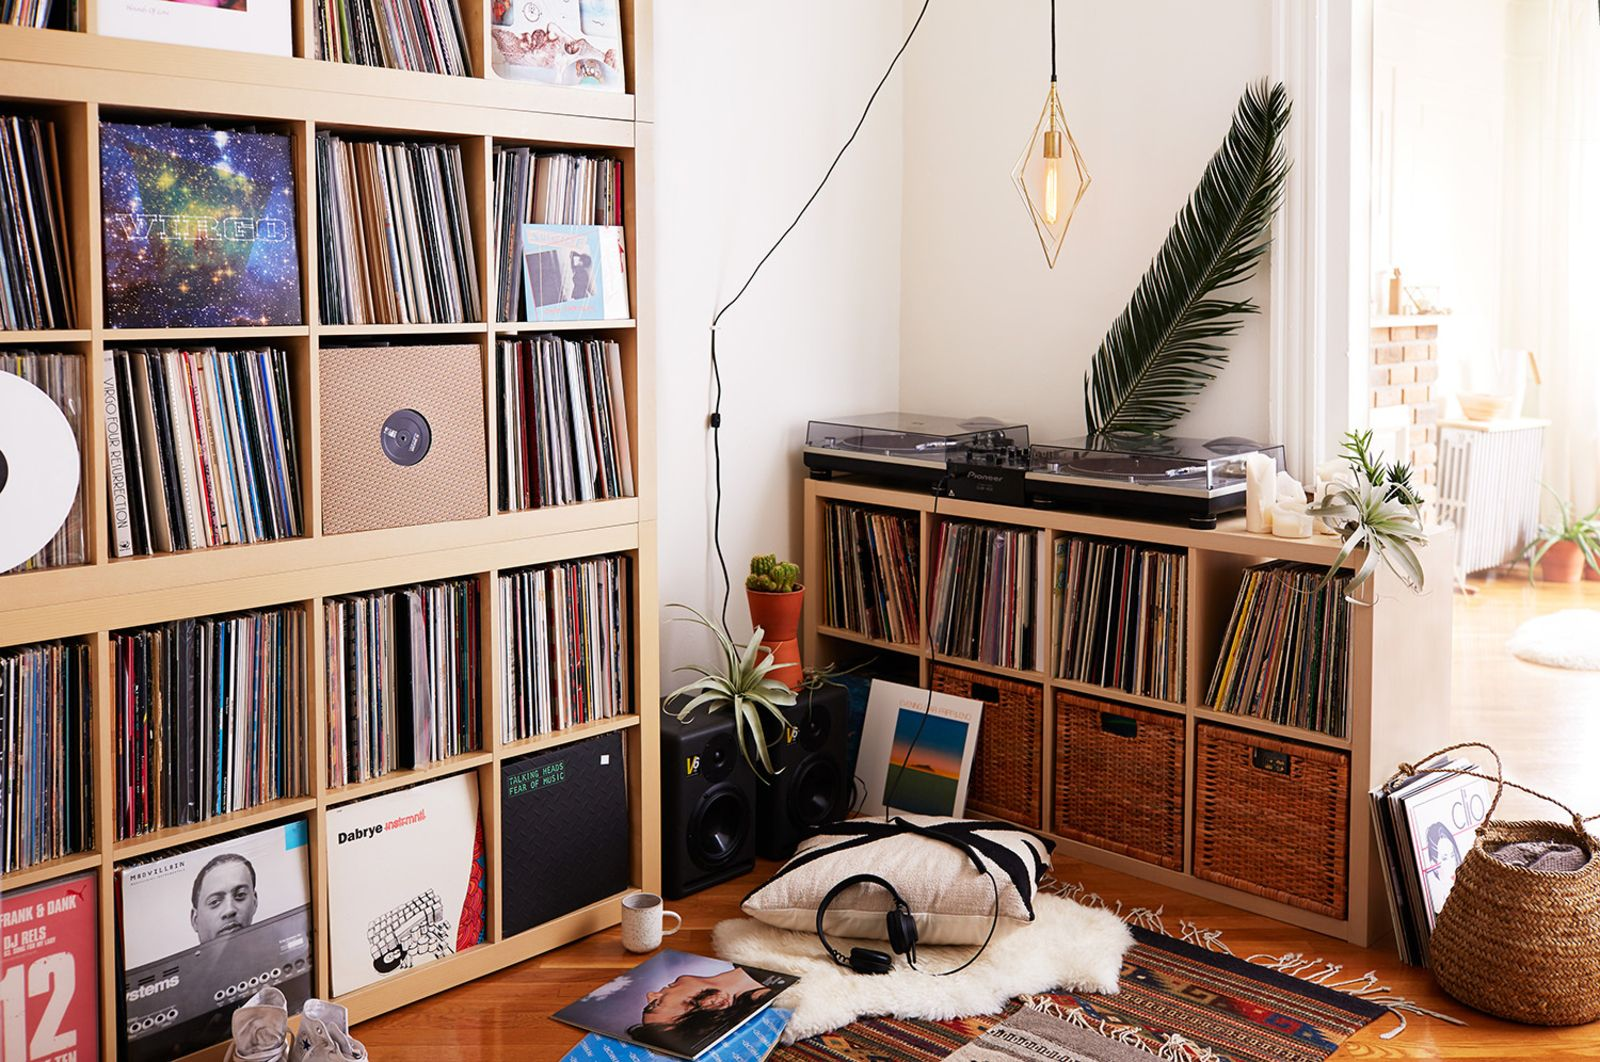 Bret's extensive record collection fills a corner of the space.